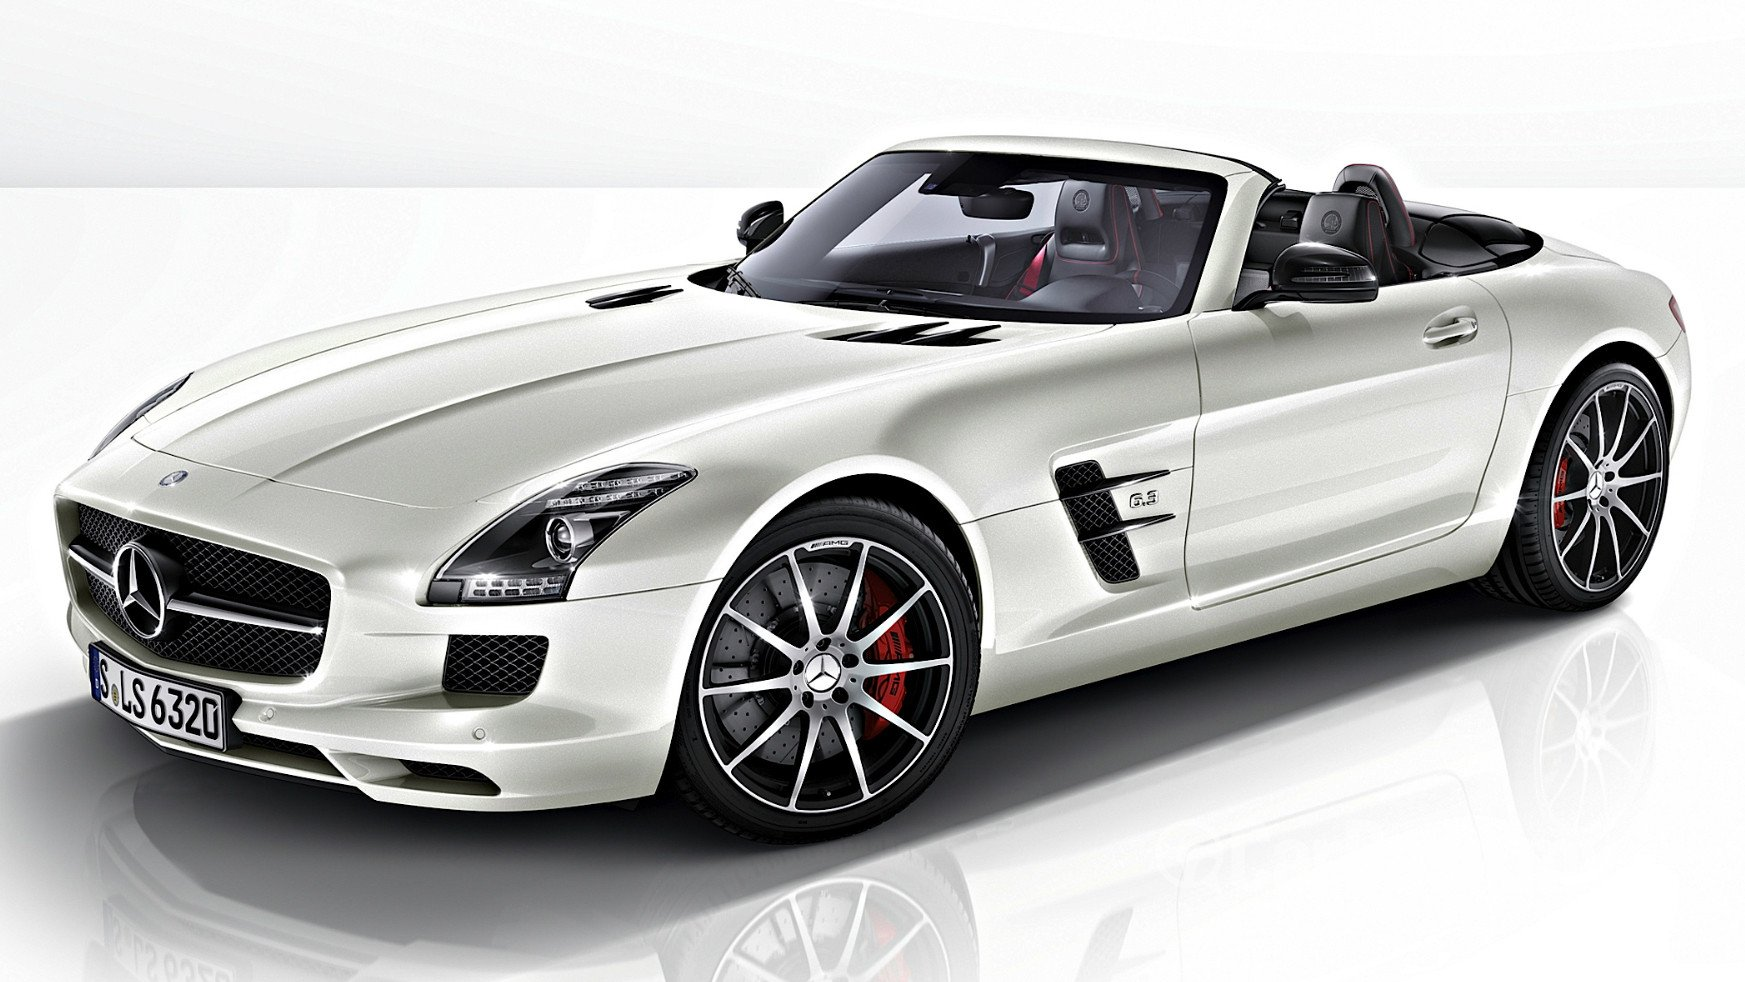 Mercedes benz sls amg roadster r197 2010 exterior image for Mercedes benz 2010 price